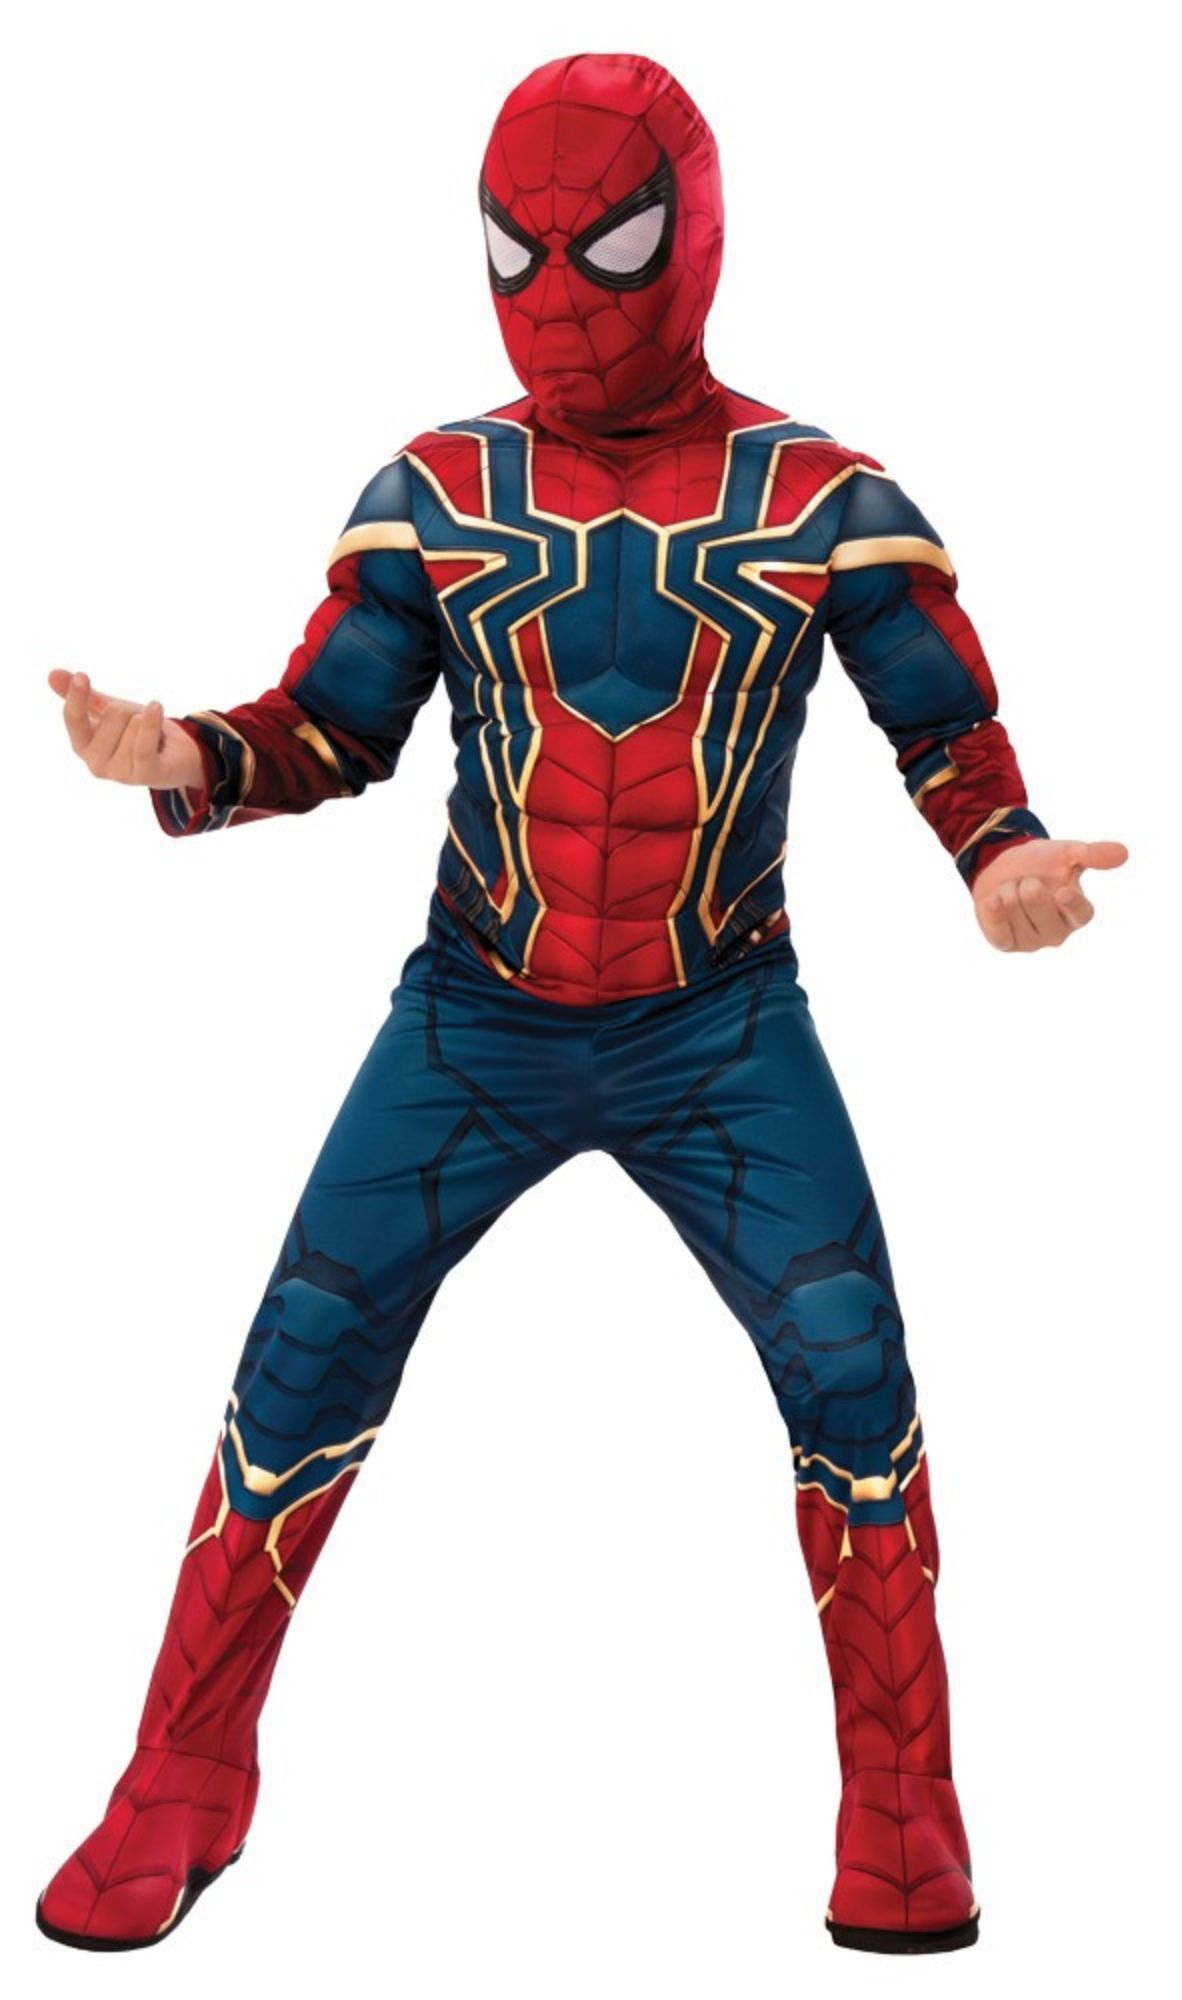 Boys Official Iron Spiderman Avengers Endgame Fancy Dress Superhero Costume